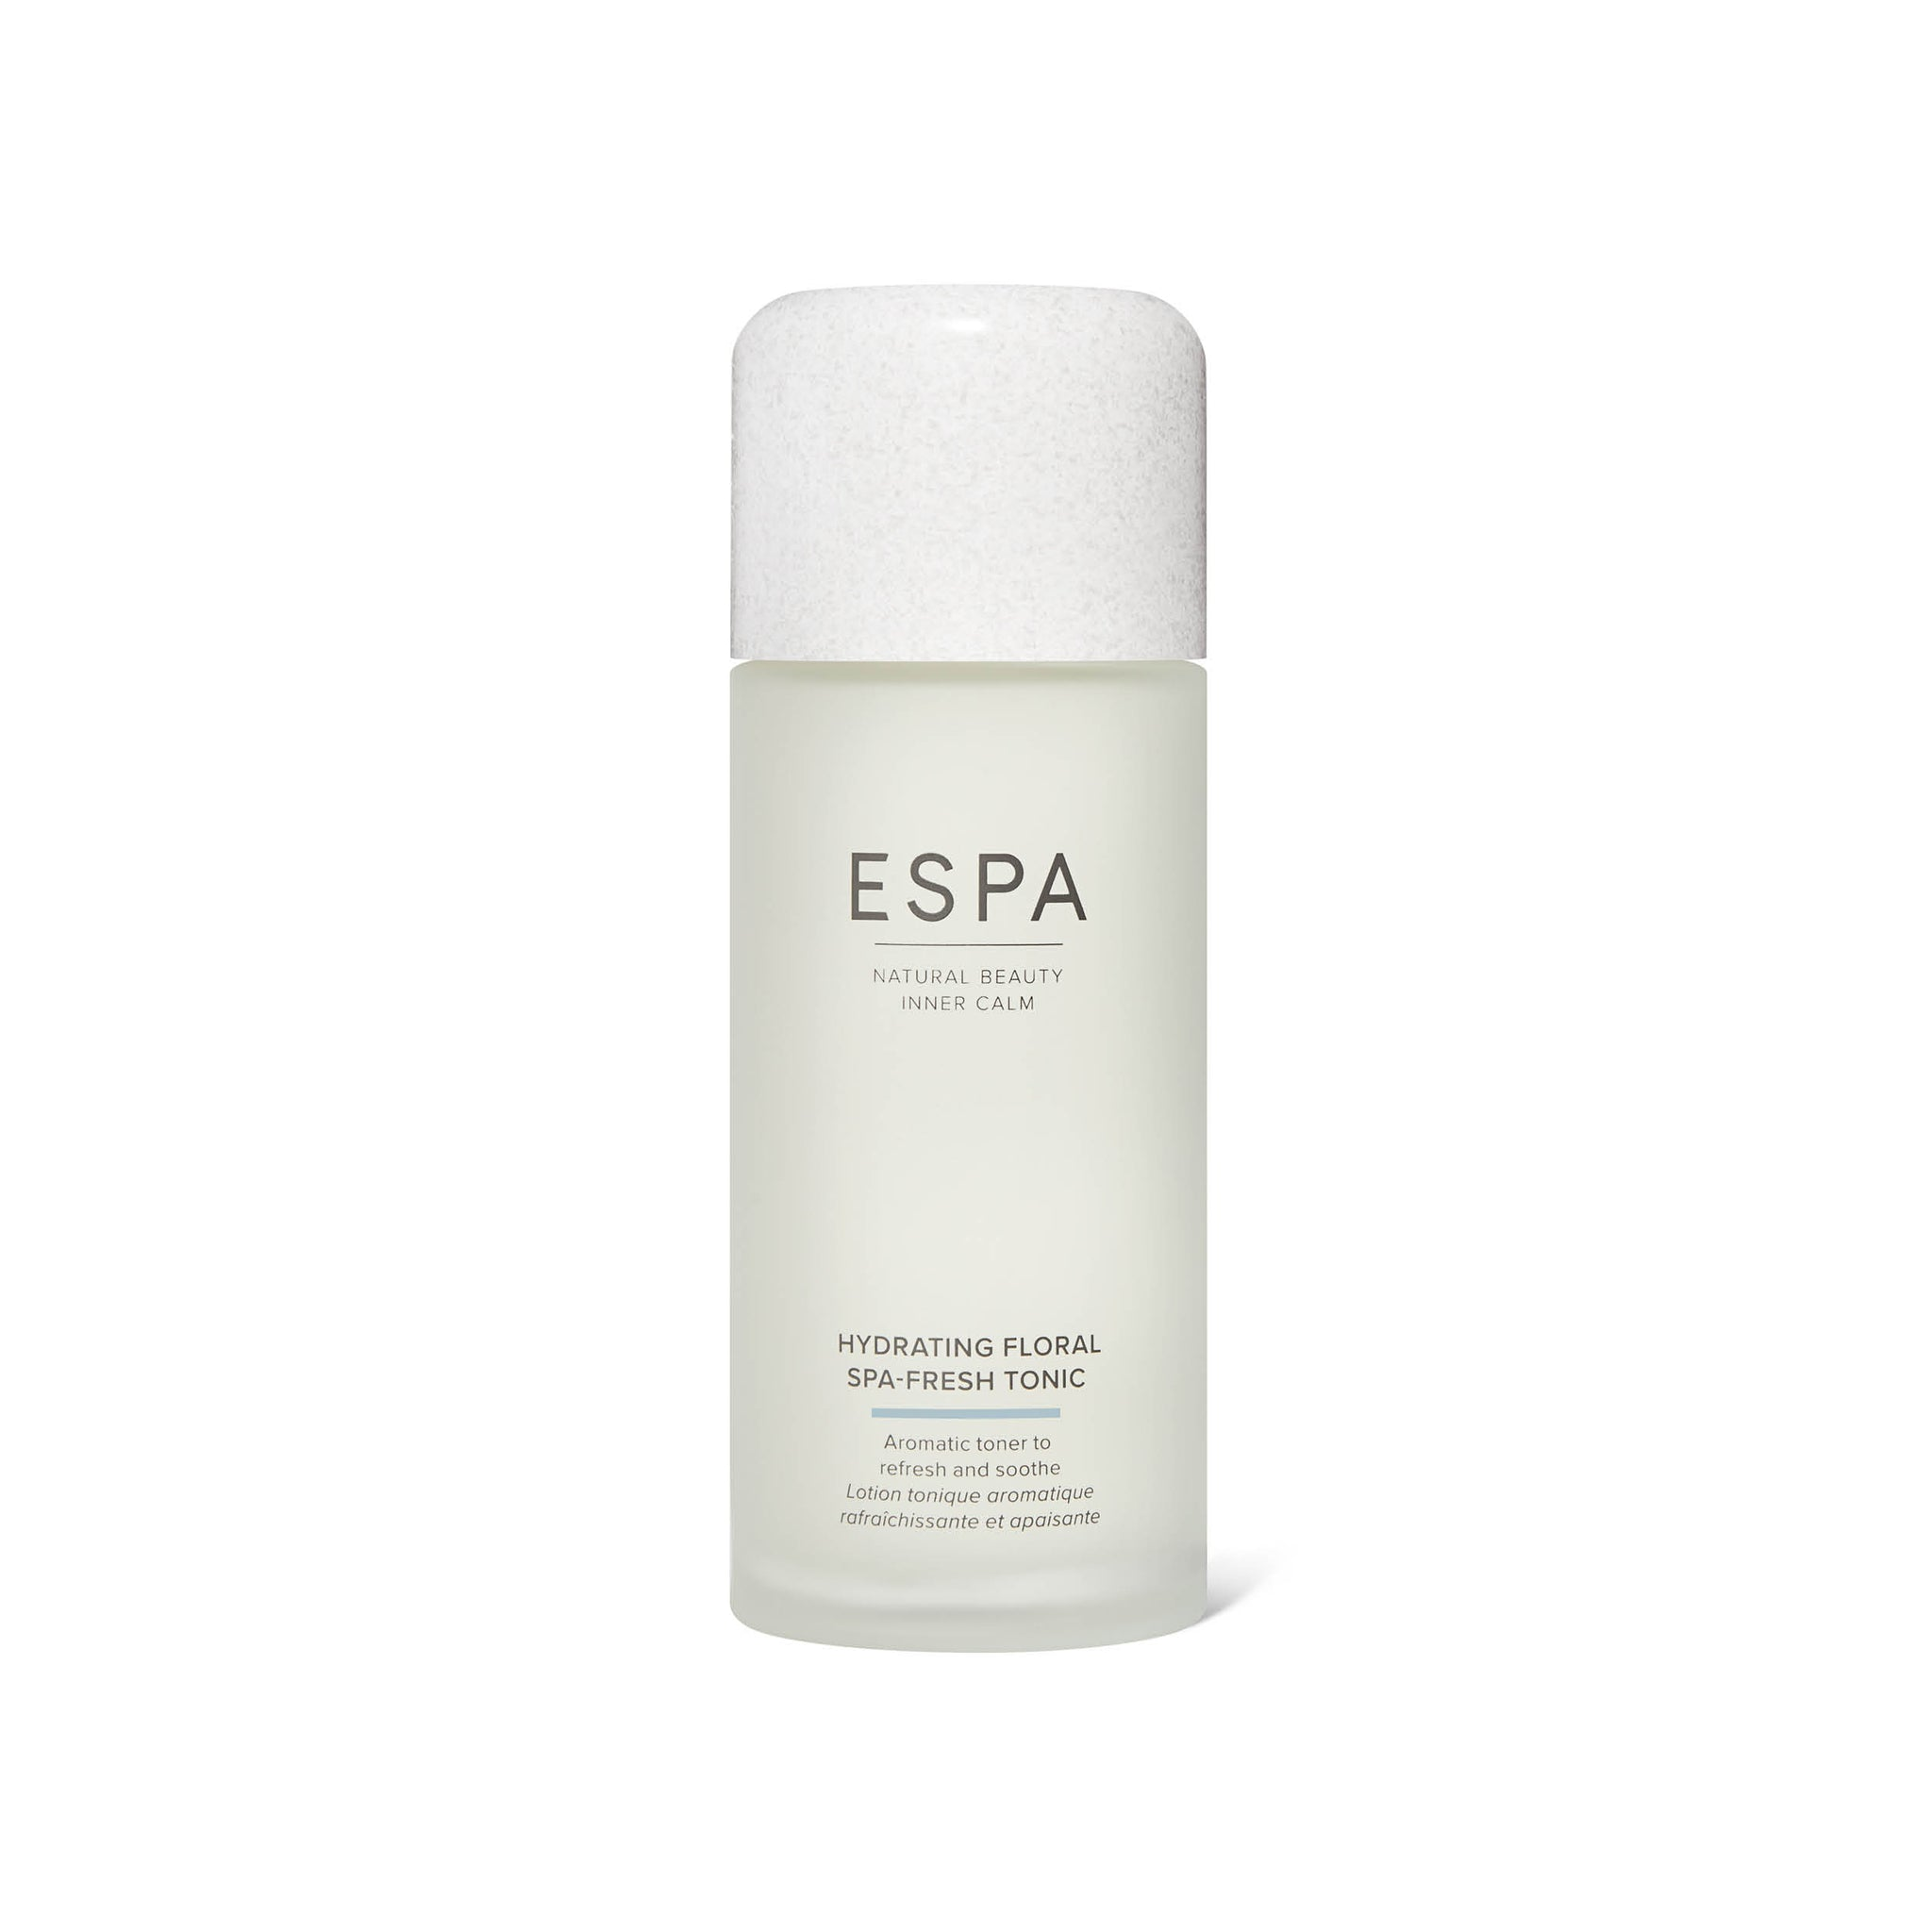 ESPA Hydrating Floral Spa Fresh Tonic